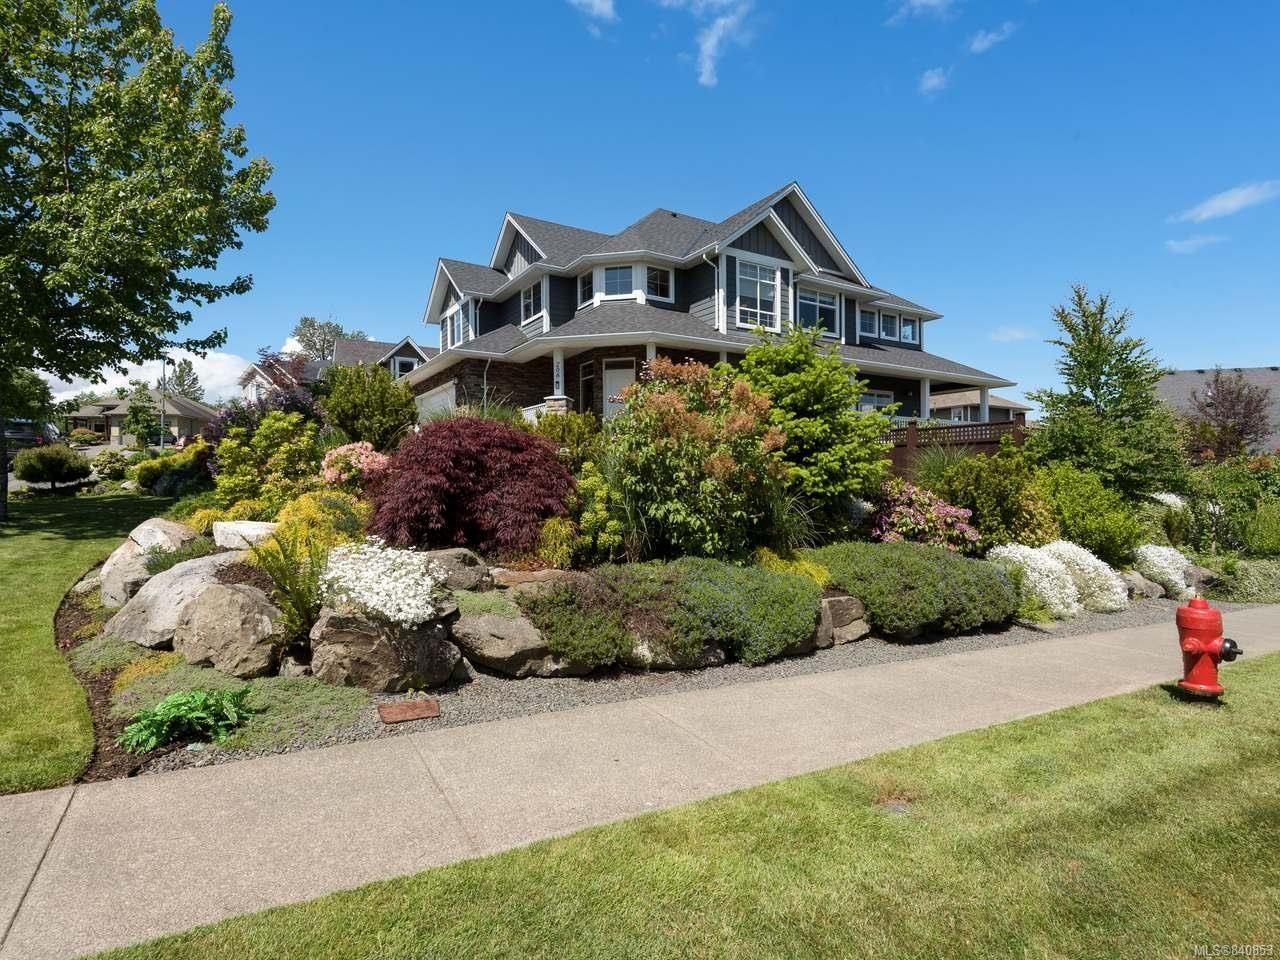 Photo 69: Photos: 206 Marie Pl in CAMPBELL RIVER: CR Willow Point House for sale (Campbell River)  : MLS®# 840853